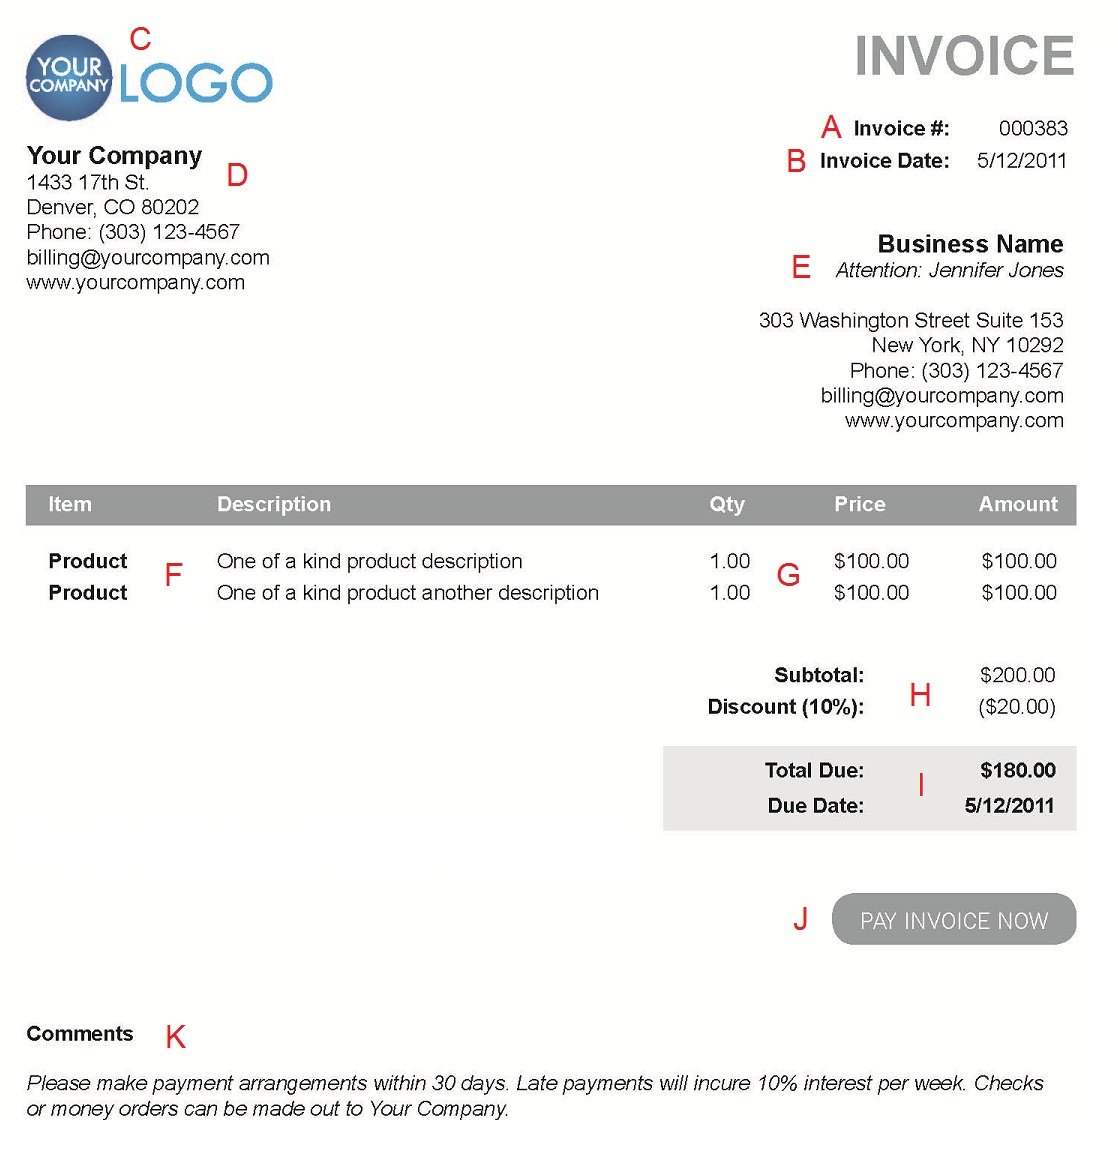 Aaaaeroincus  Scenic The  Different Sections Of An Electronic Payment Invoice With Remarkable A  With Beauteous Sample Service Invoice Also Wawf Invoice In Addition Invoice Pricing Ford And Invoice Proforma As Well As Electronic Invoice Processing Additionally Fake Invoice Template From Paysimplecom With Aaaaeroincus  Remarkable The  Different Sections Of An Electronic Payment Invoice With Beauteous A  And Scenic Sample Service Invoice Also Wawf Invoice In Addition Invoice Pricing Ford From Paysimplecom